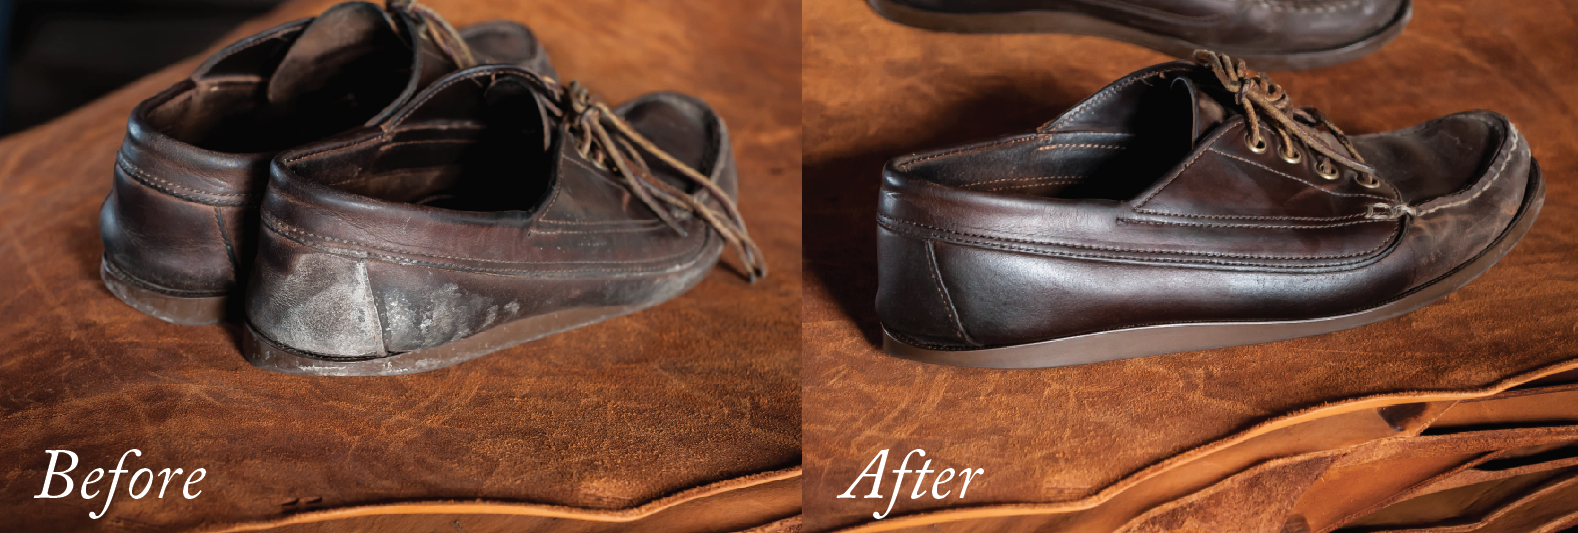 How to remove salt stains from boots